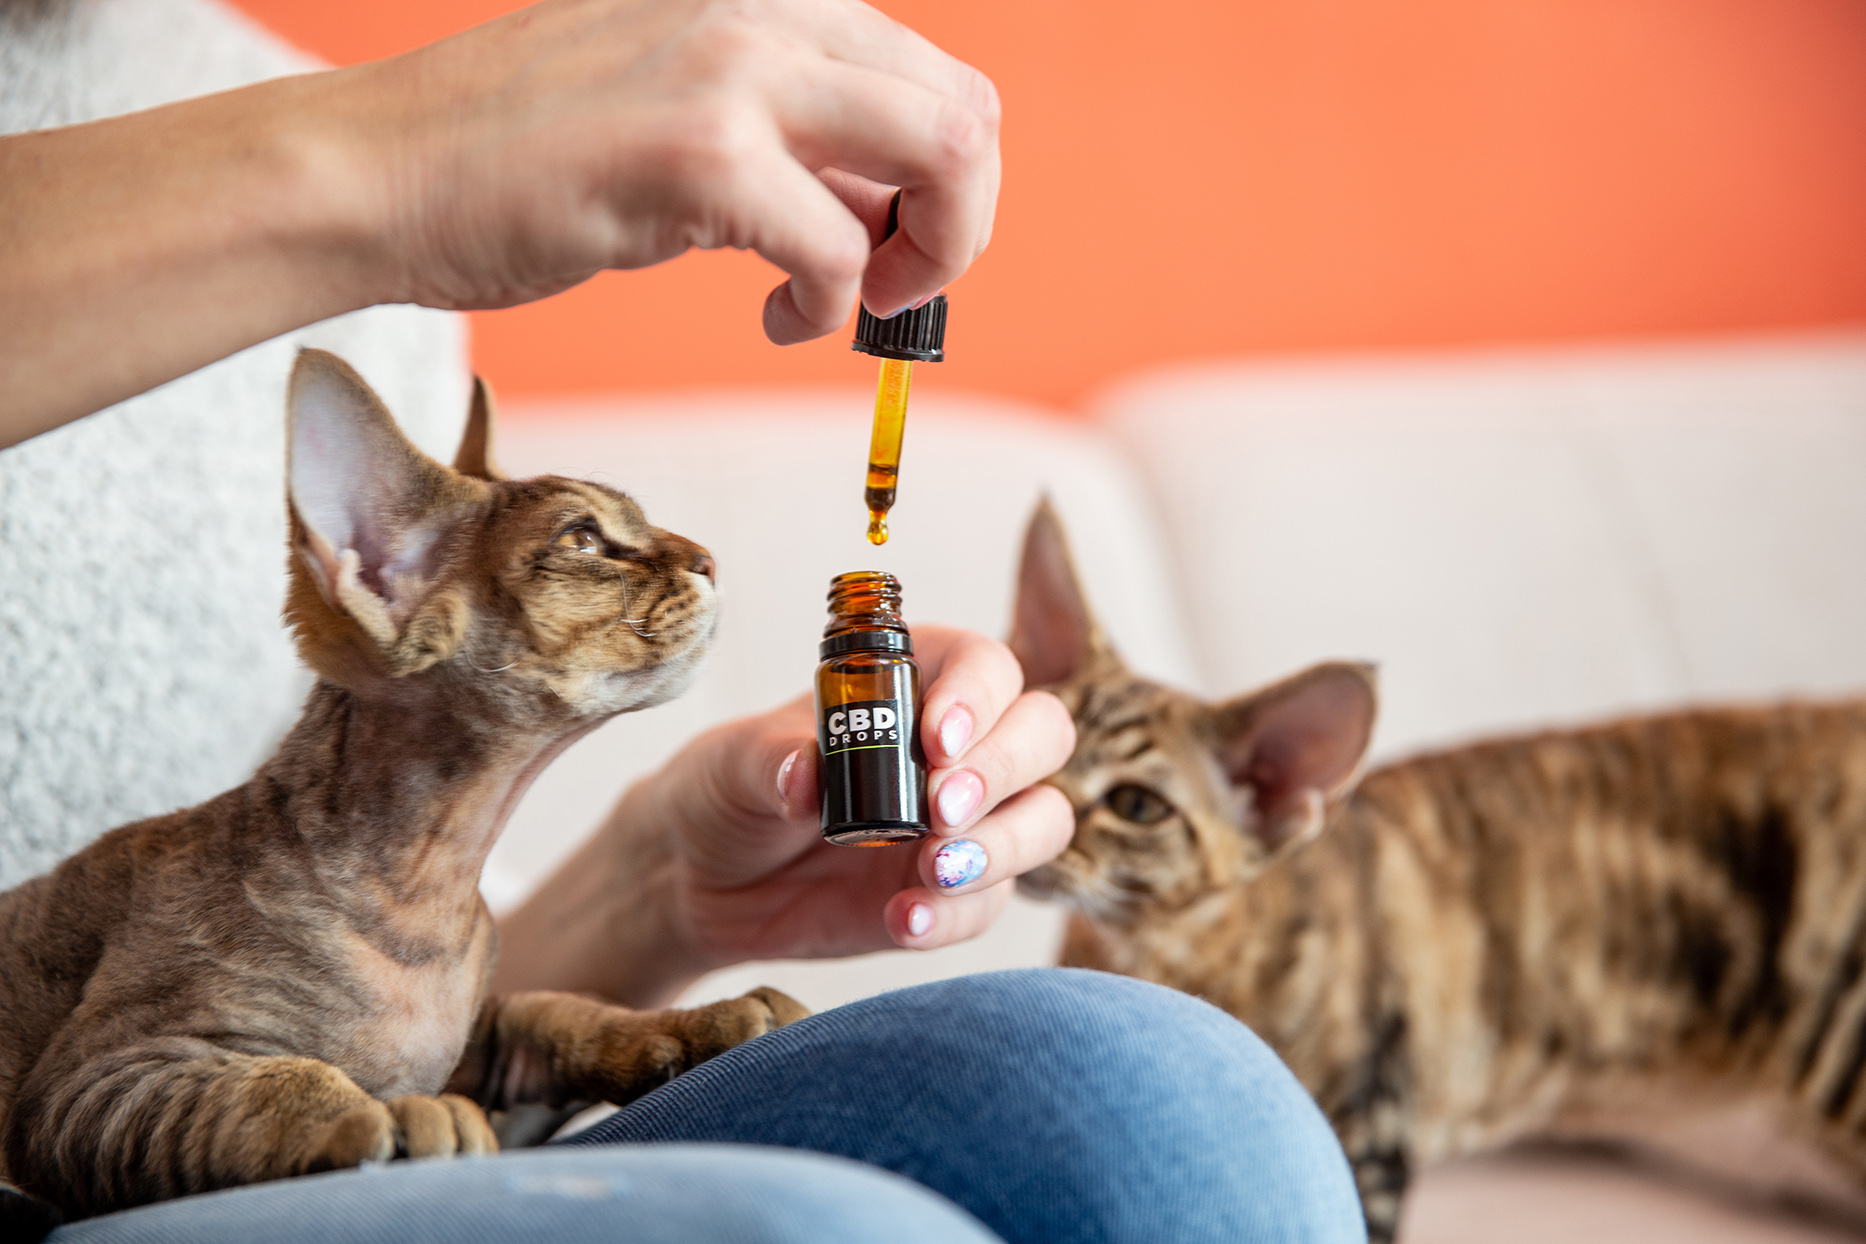 Female Pet Owner Giving Her Cat CBD Oil Drops as Alternative Therapy